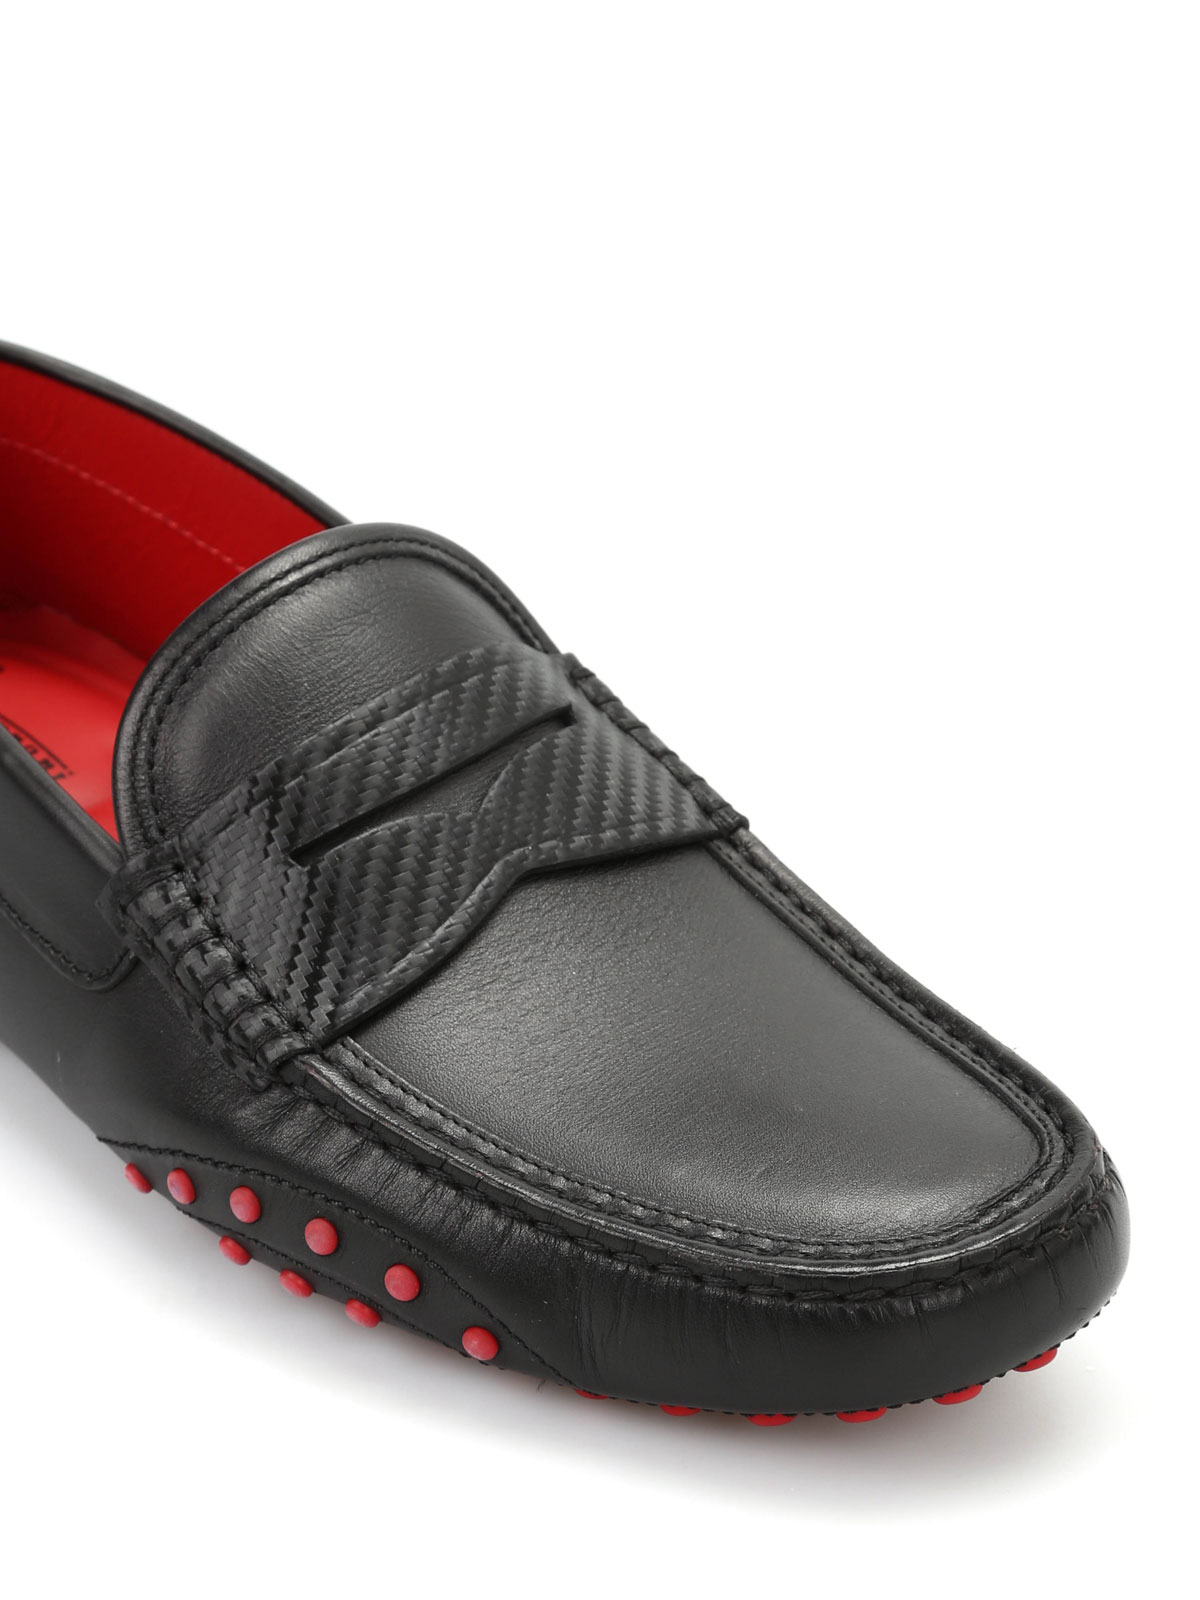 72c85e0b42 Tod'S - Mocassini Gommino Ferrari - Mocassini e slippers ...